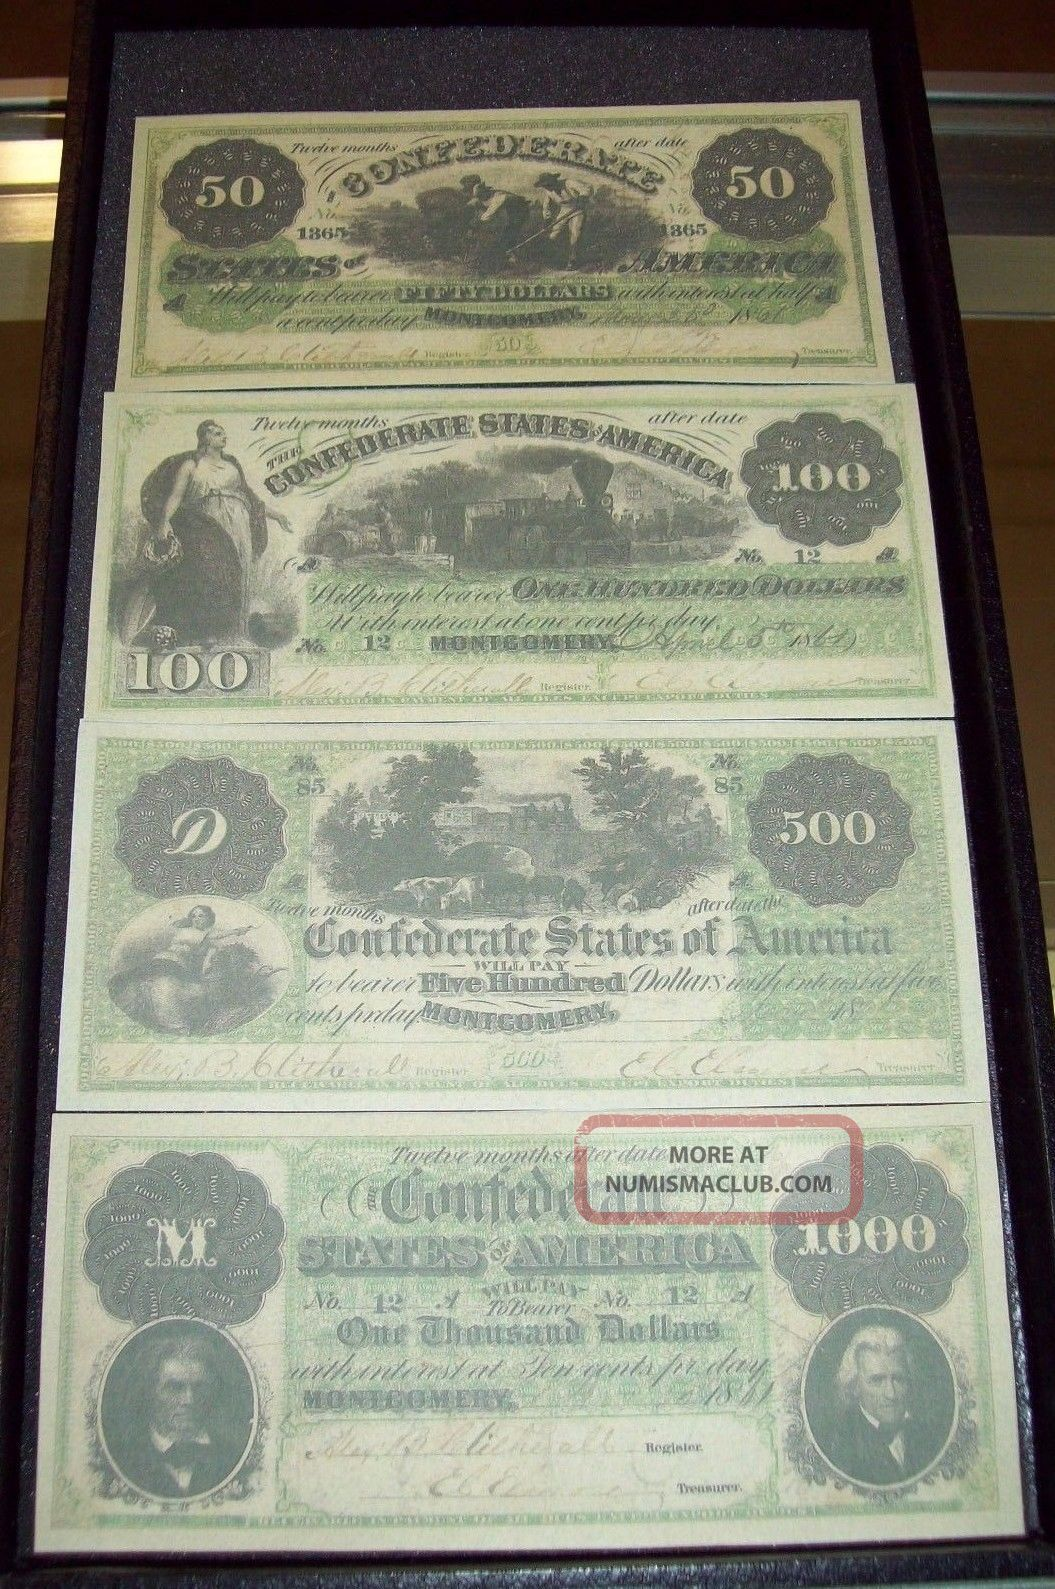 Replica 1861 Confederate Currency From Montgomery Alabama Paper Money: US photo